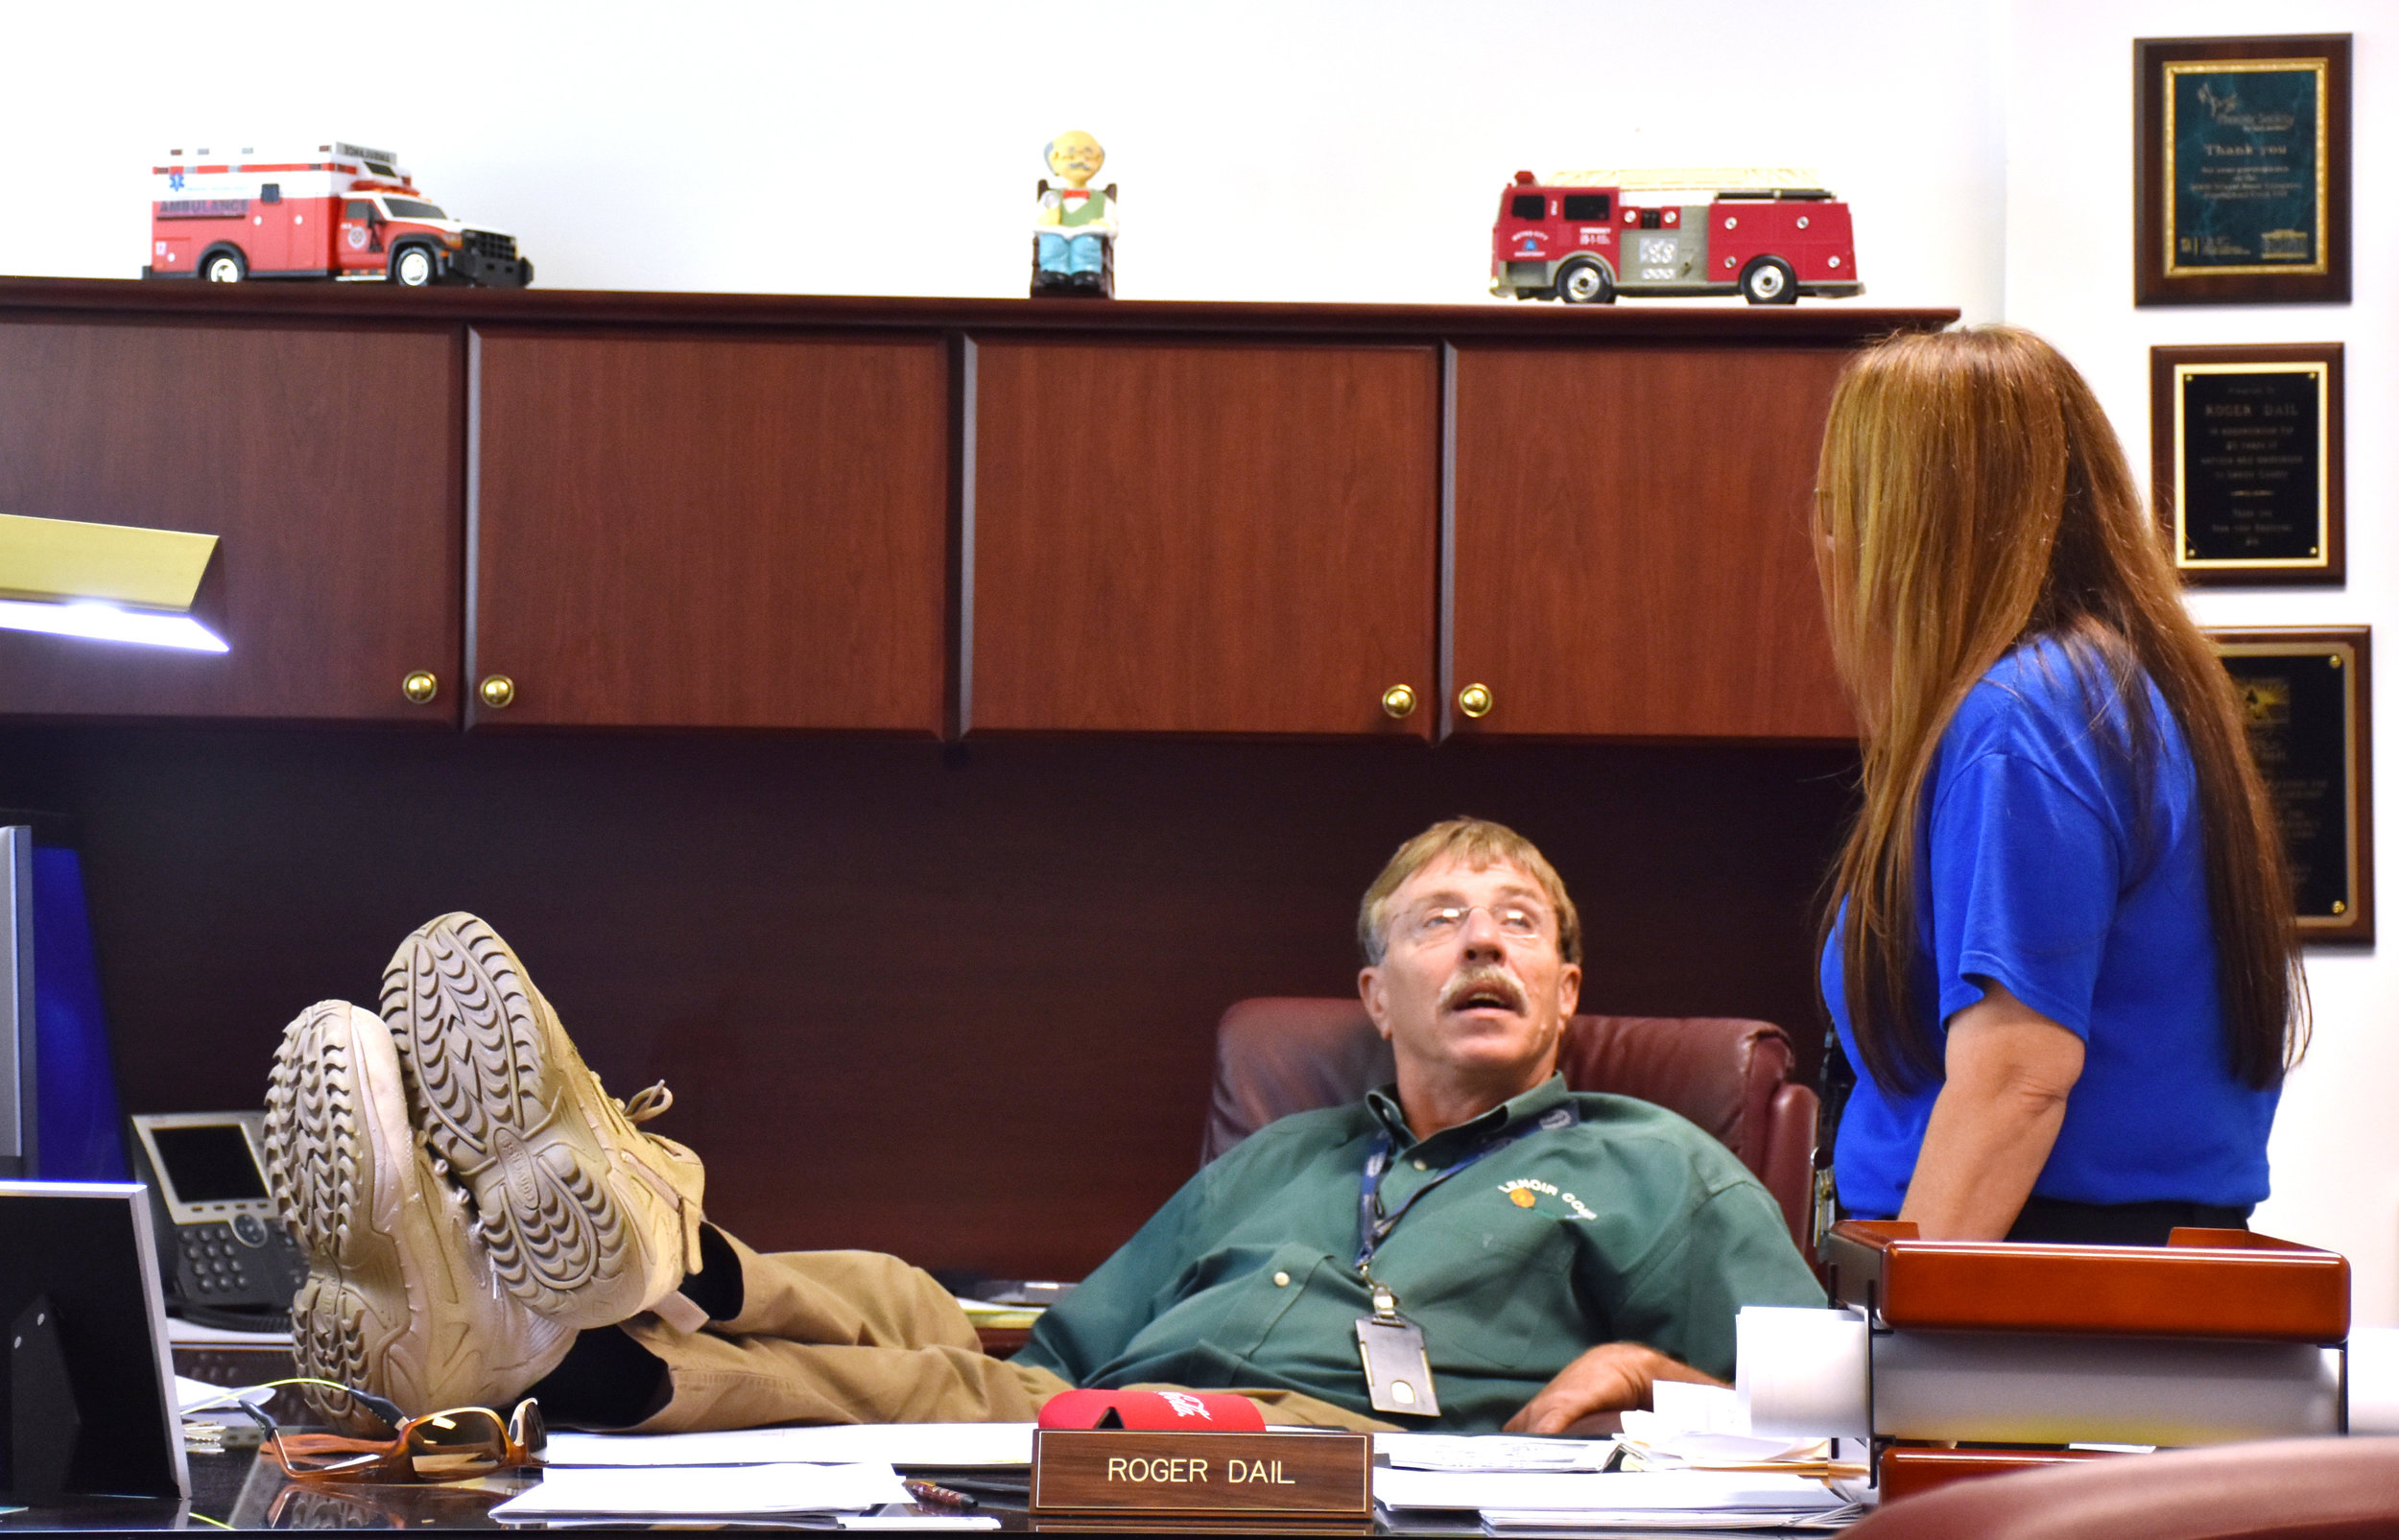 Lenoir County Emergency Services Director Roger Dail talks to LCES Assistant Director Jerri King during the aftermath of Hurricane Florence on Saturday, Sept. 22. Photo by Bryan Hanks / Neuse News